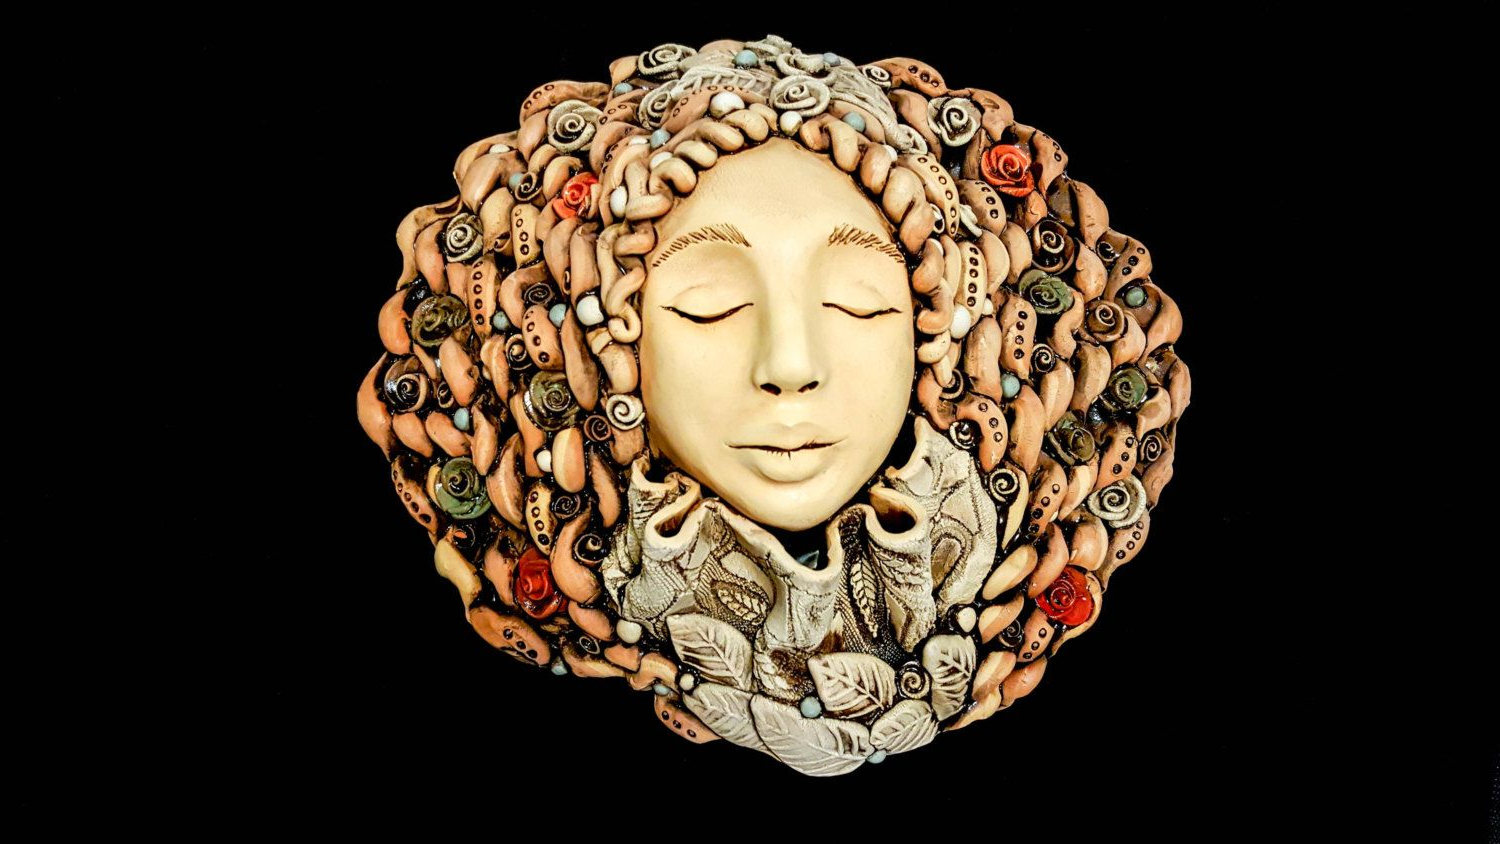 Ceramic Wall Art Rustic Wall Decoration Ceramic Women Face Pertaining To Famous Ceramic Rustic Wall Décor (View 4 of 20)